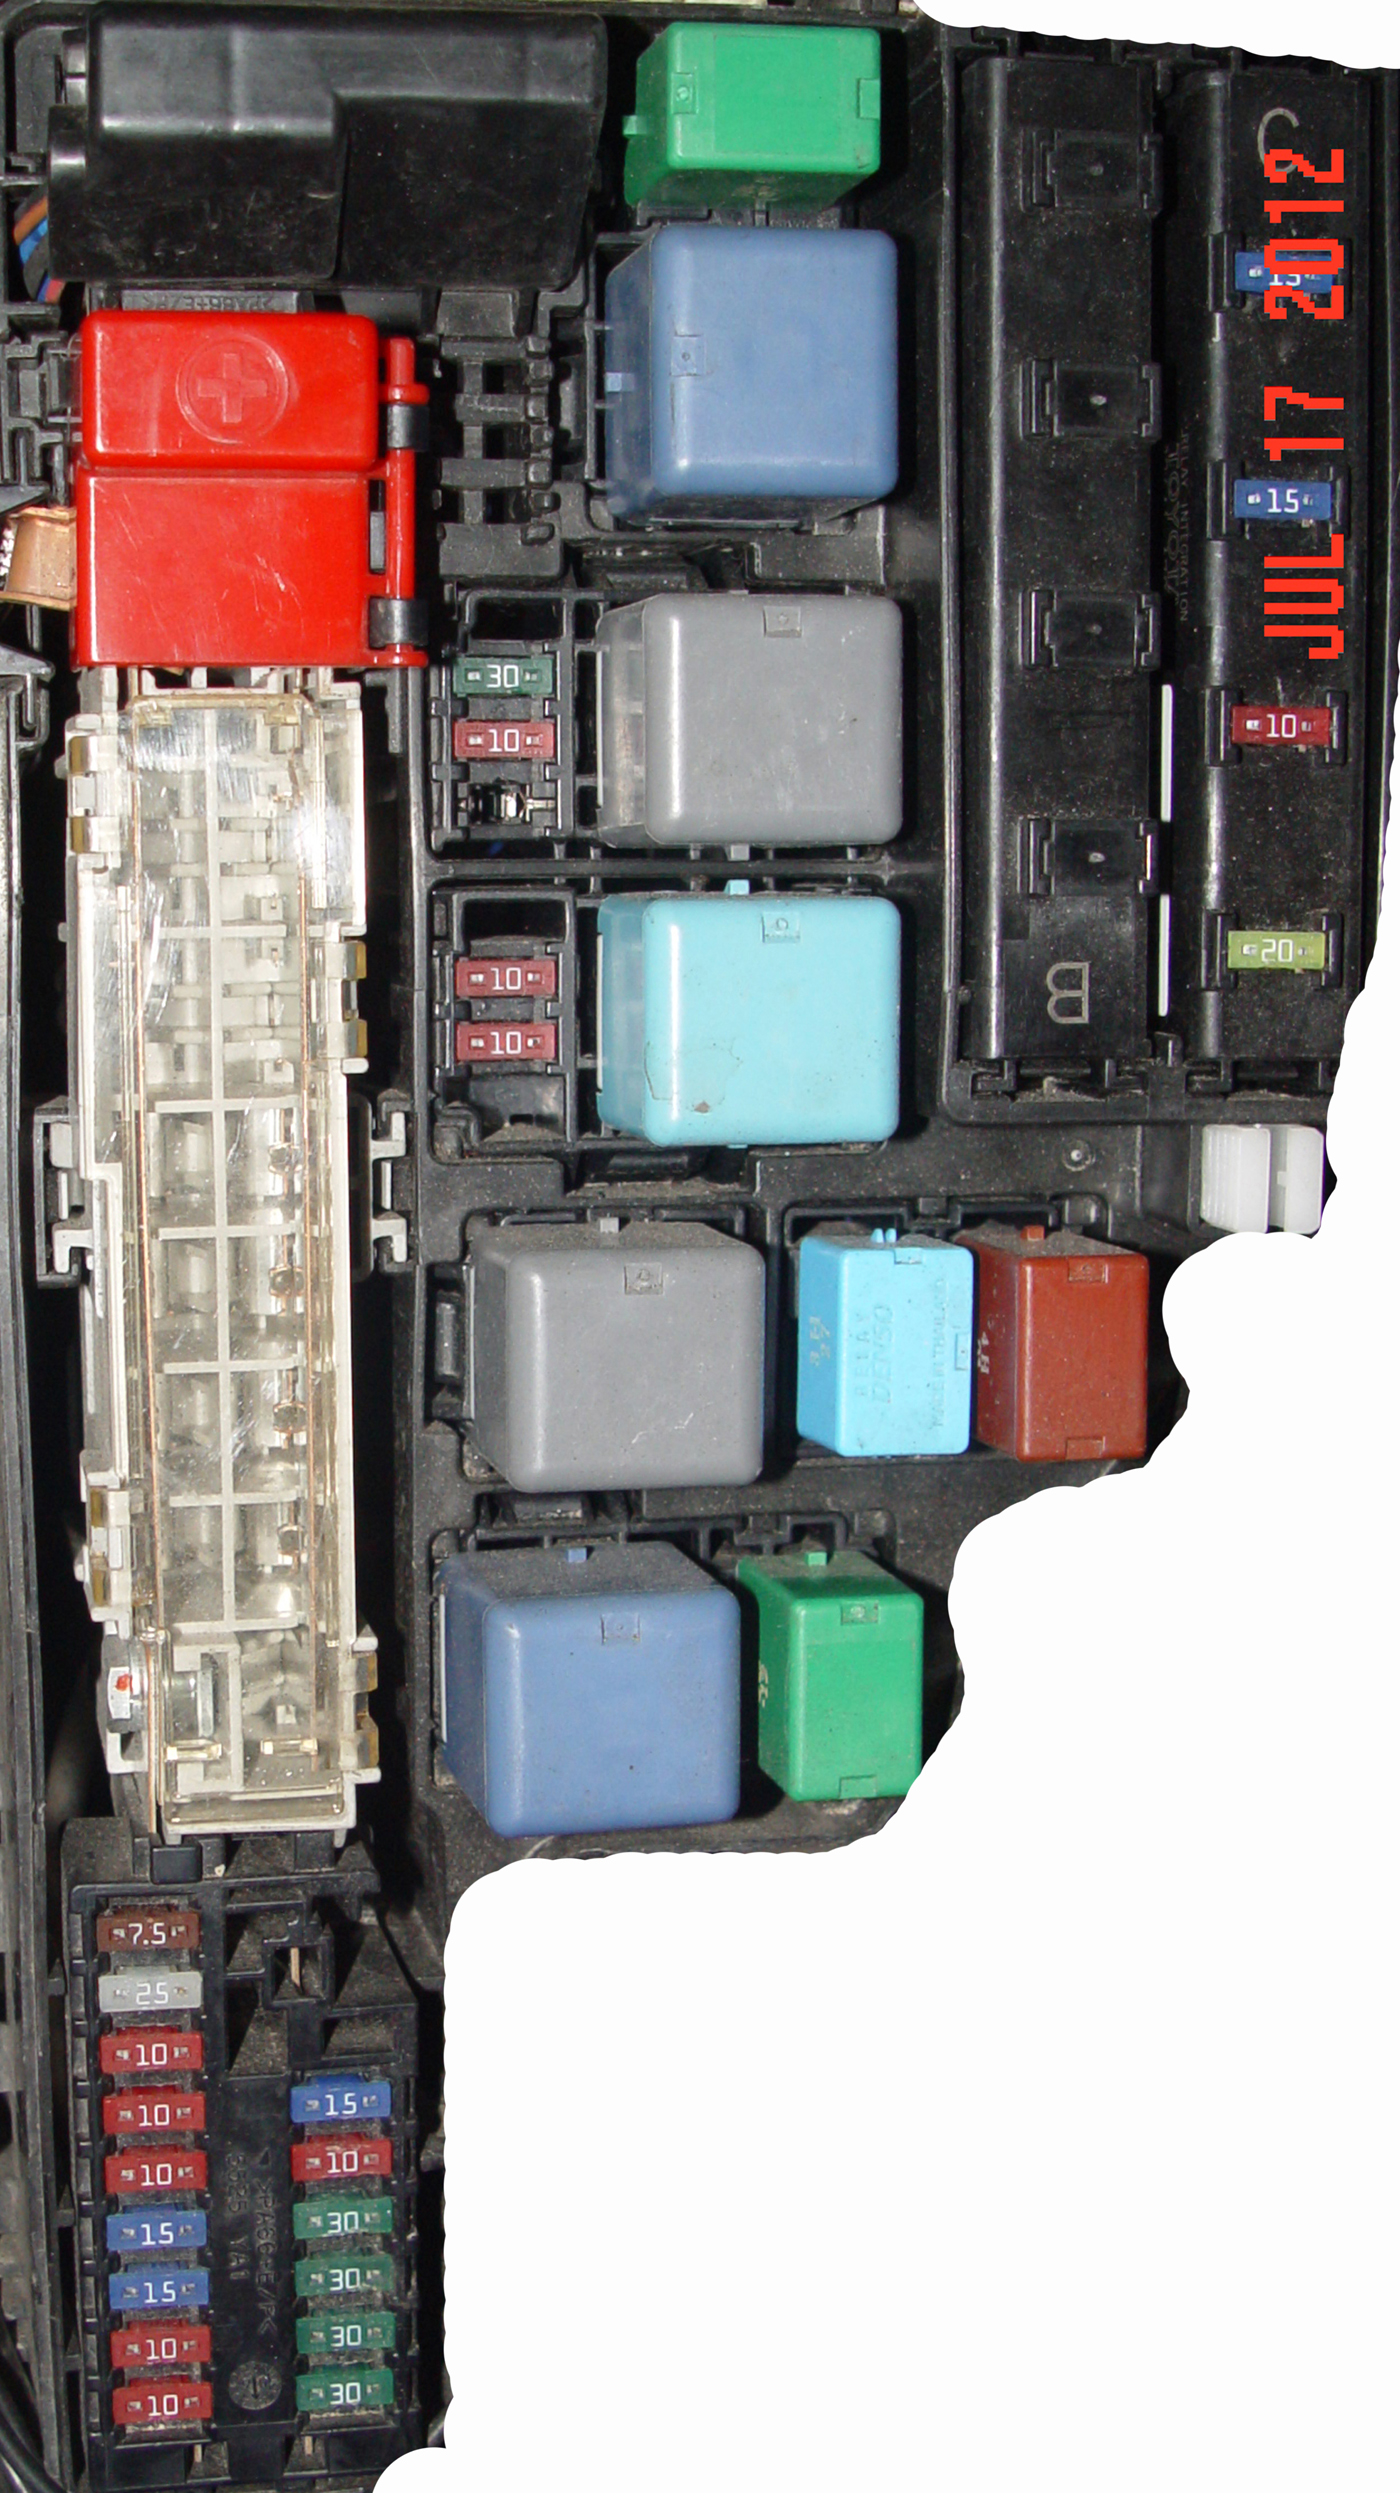 2006 Toyota Prius All Of A Sudden The Display In Center Mini Cooper Fuse Box Diagram Exteruior Engine Compartment